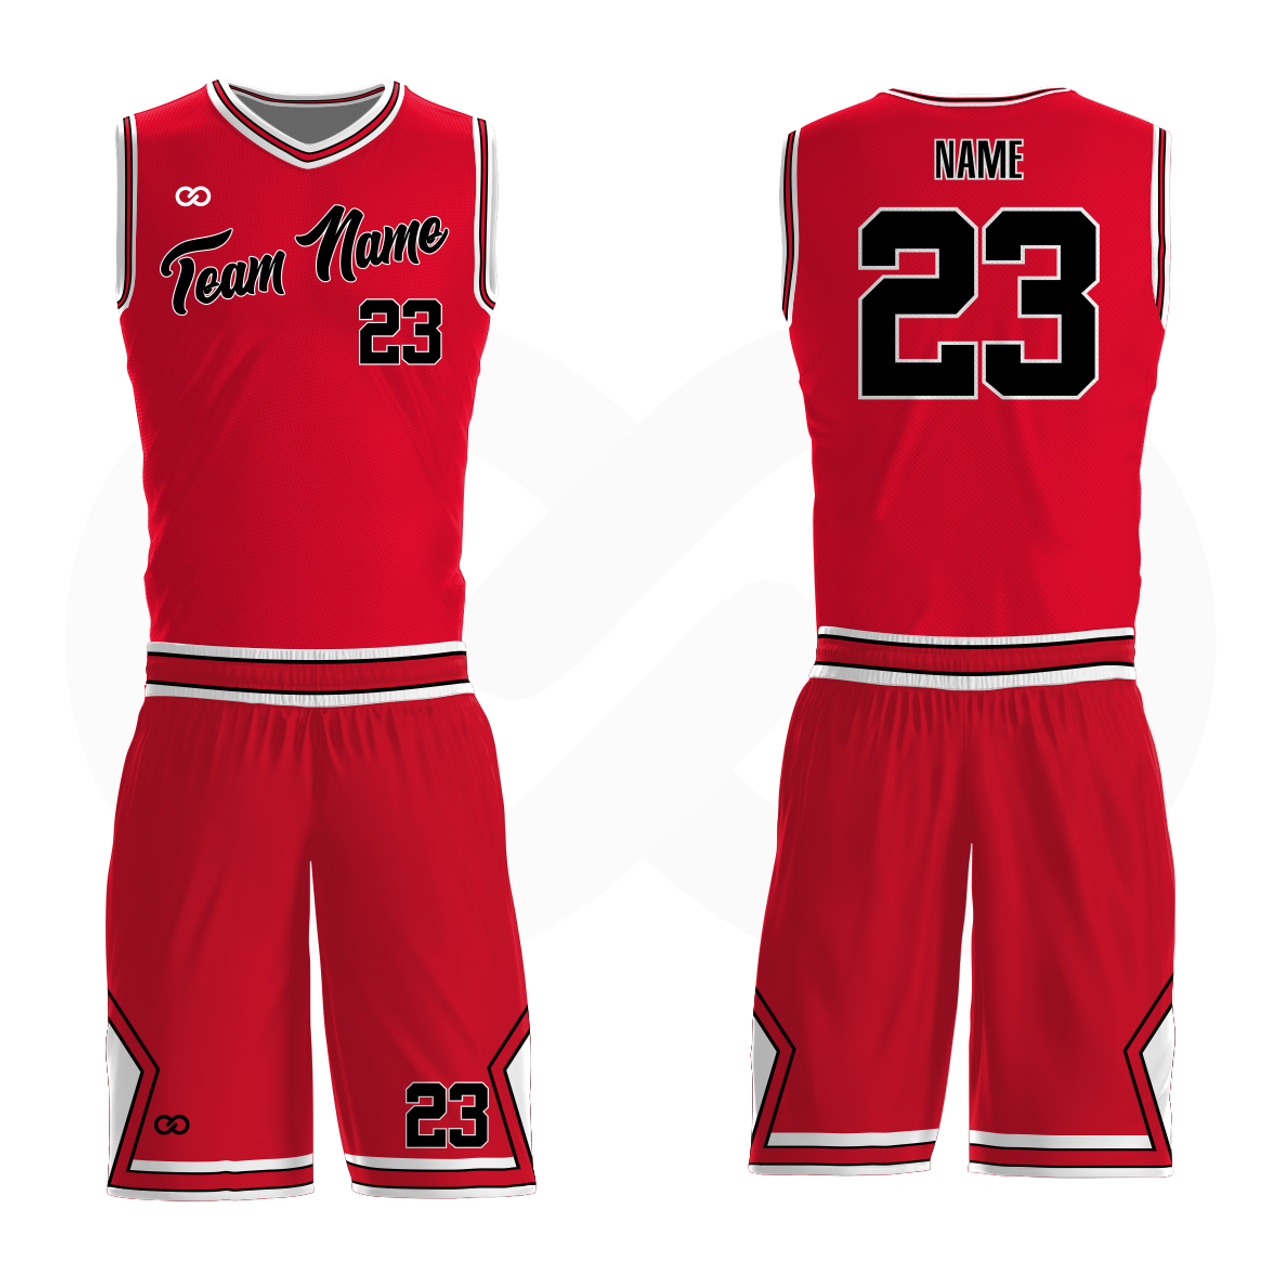 fd21f8b69e2 Bulls - Custom Basketball Uniform Full Set - Wooter Apparel